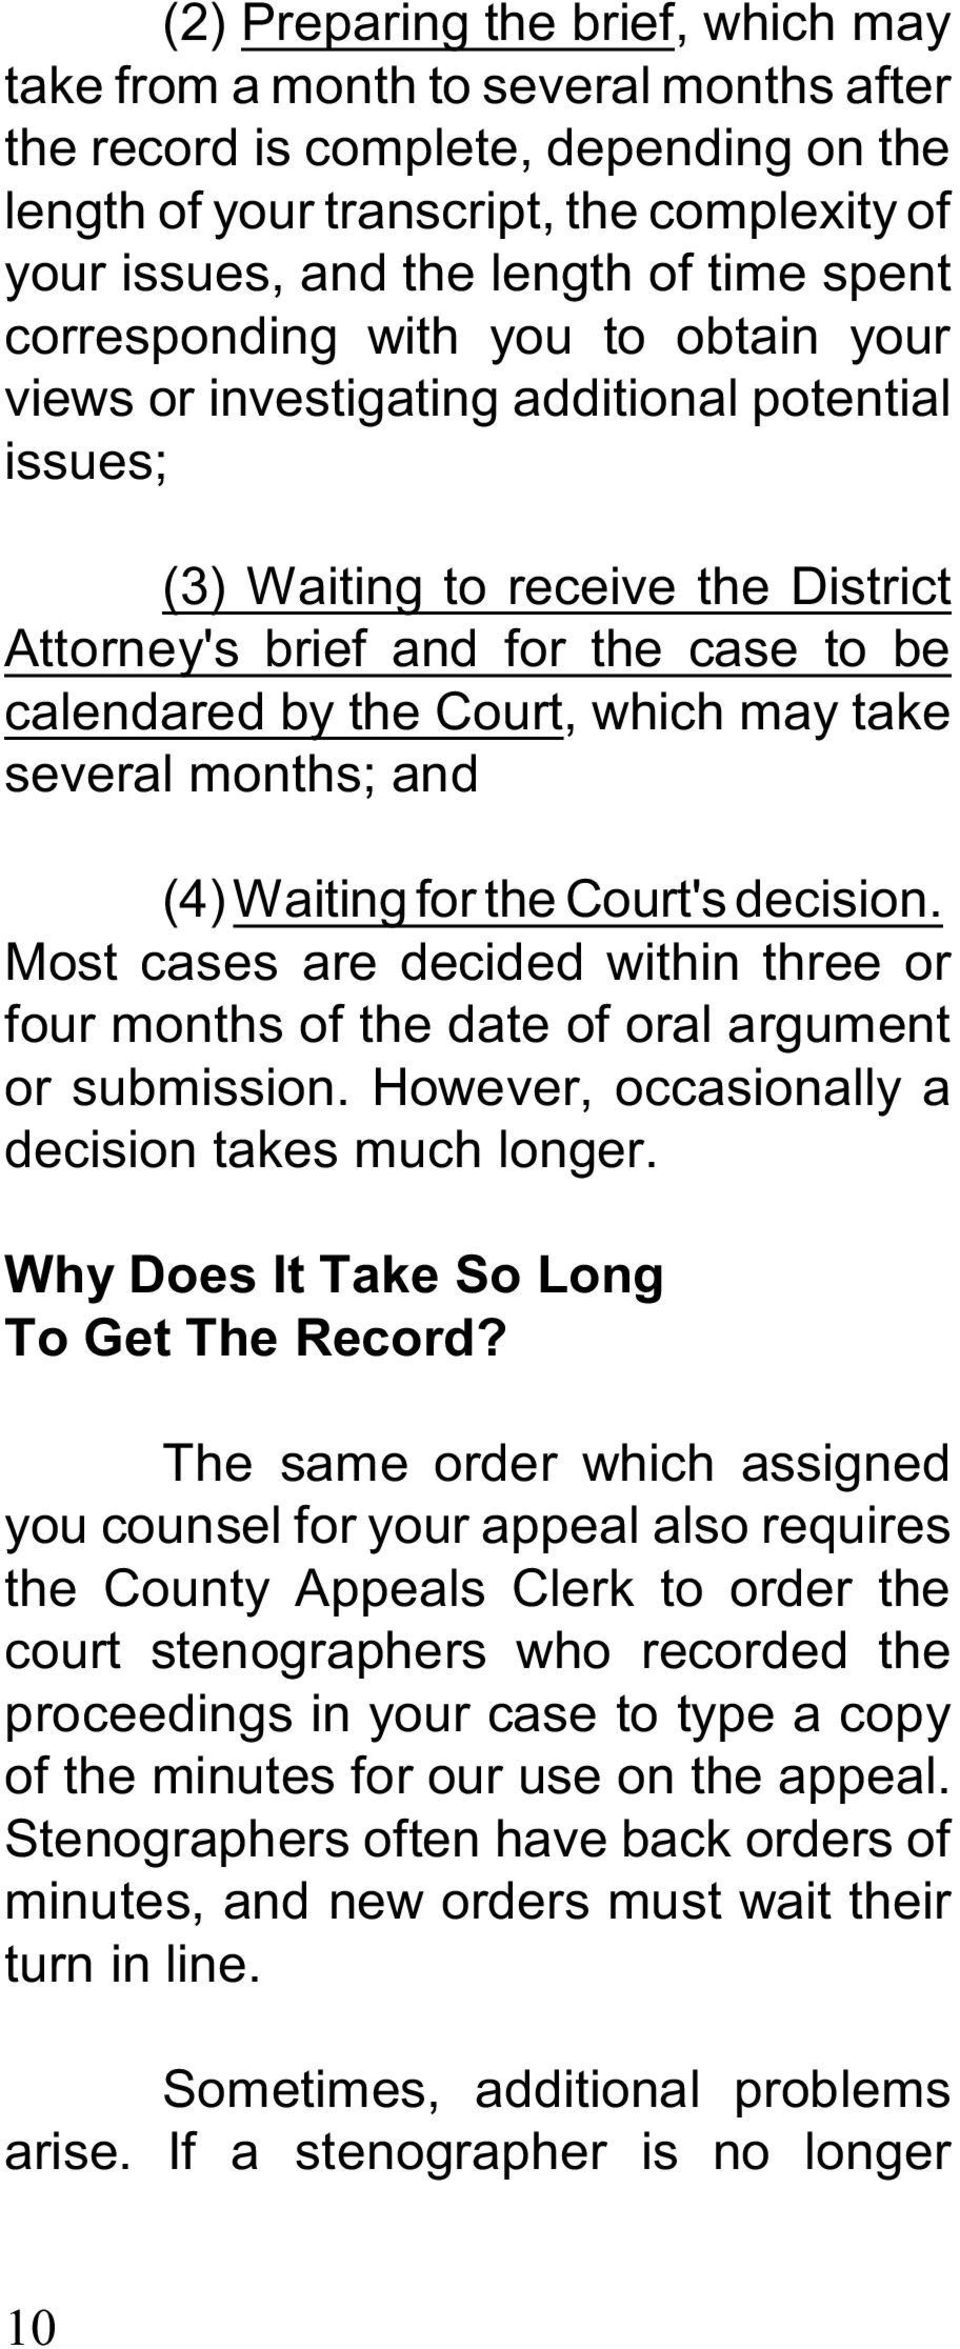 which may take several months; and (4) Waiting for the Court's decision. Most cases are decided within three or four months of the date of oral argument or submission.